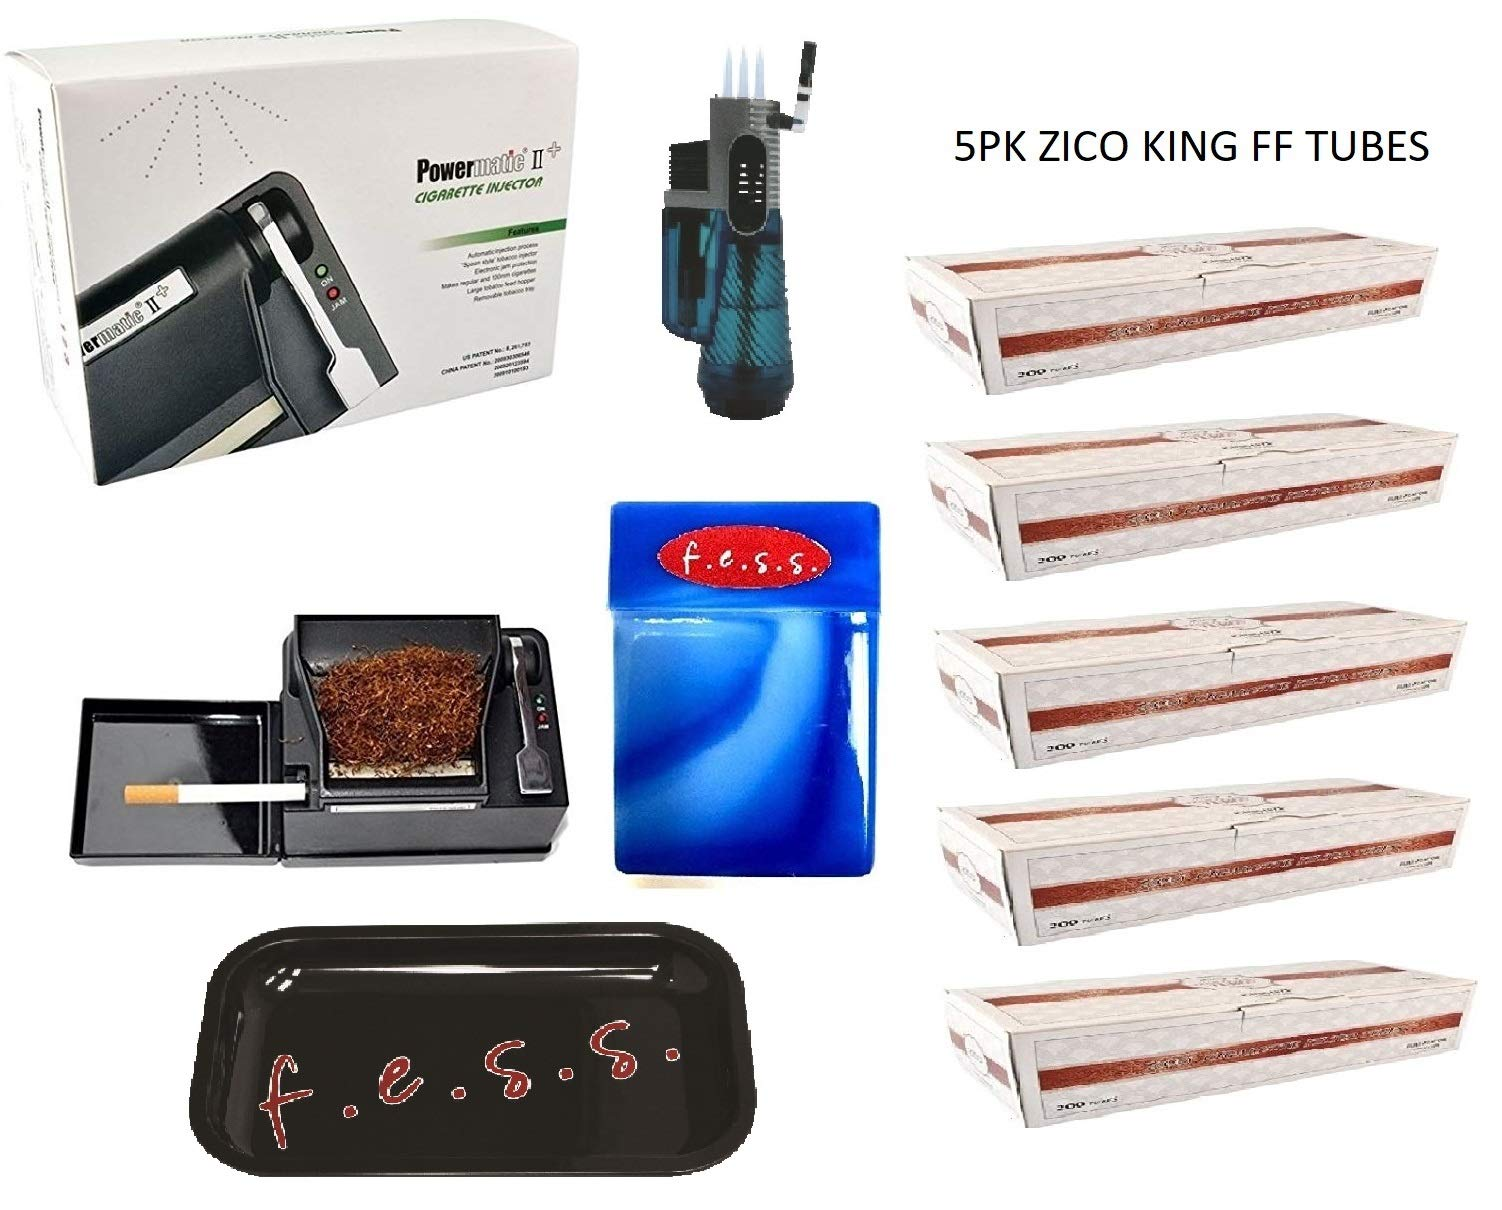 Powermatic 2 PLUS Electric Cigarette Injector Machine+ Two FREE Tubes,Cig Case & Two liters by F.e.s.s. Products